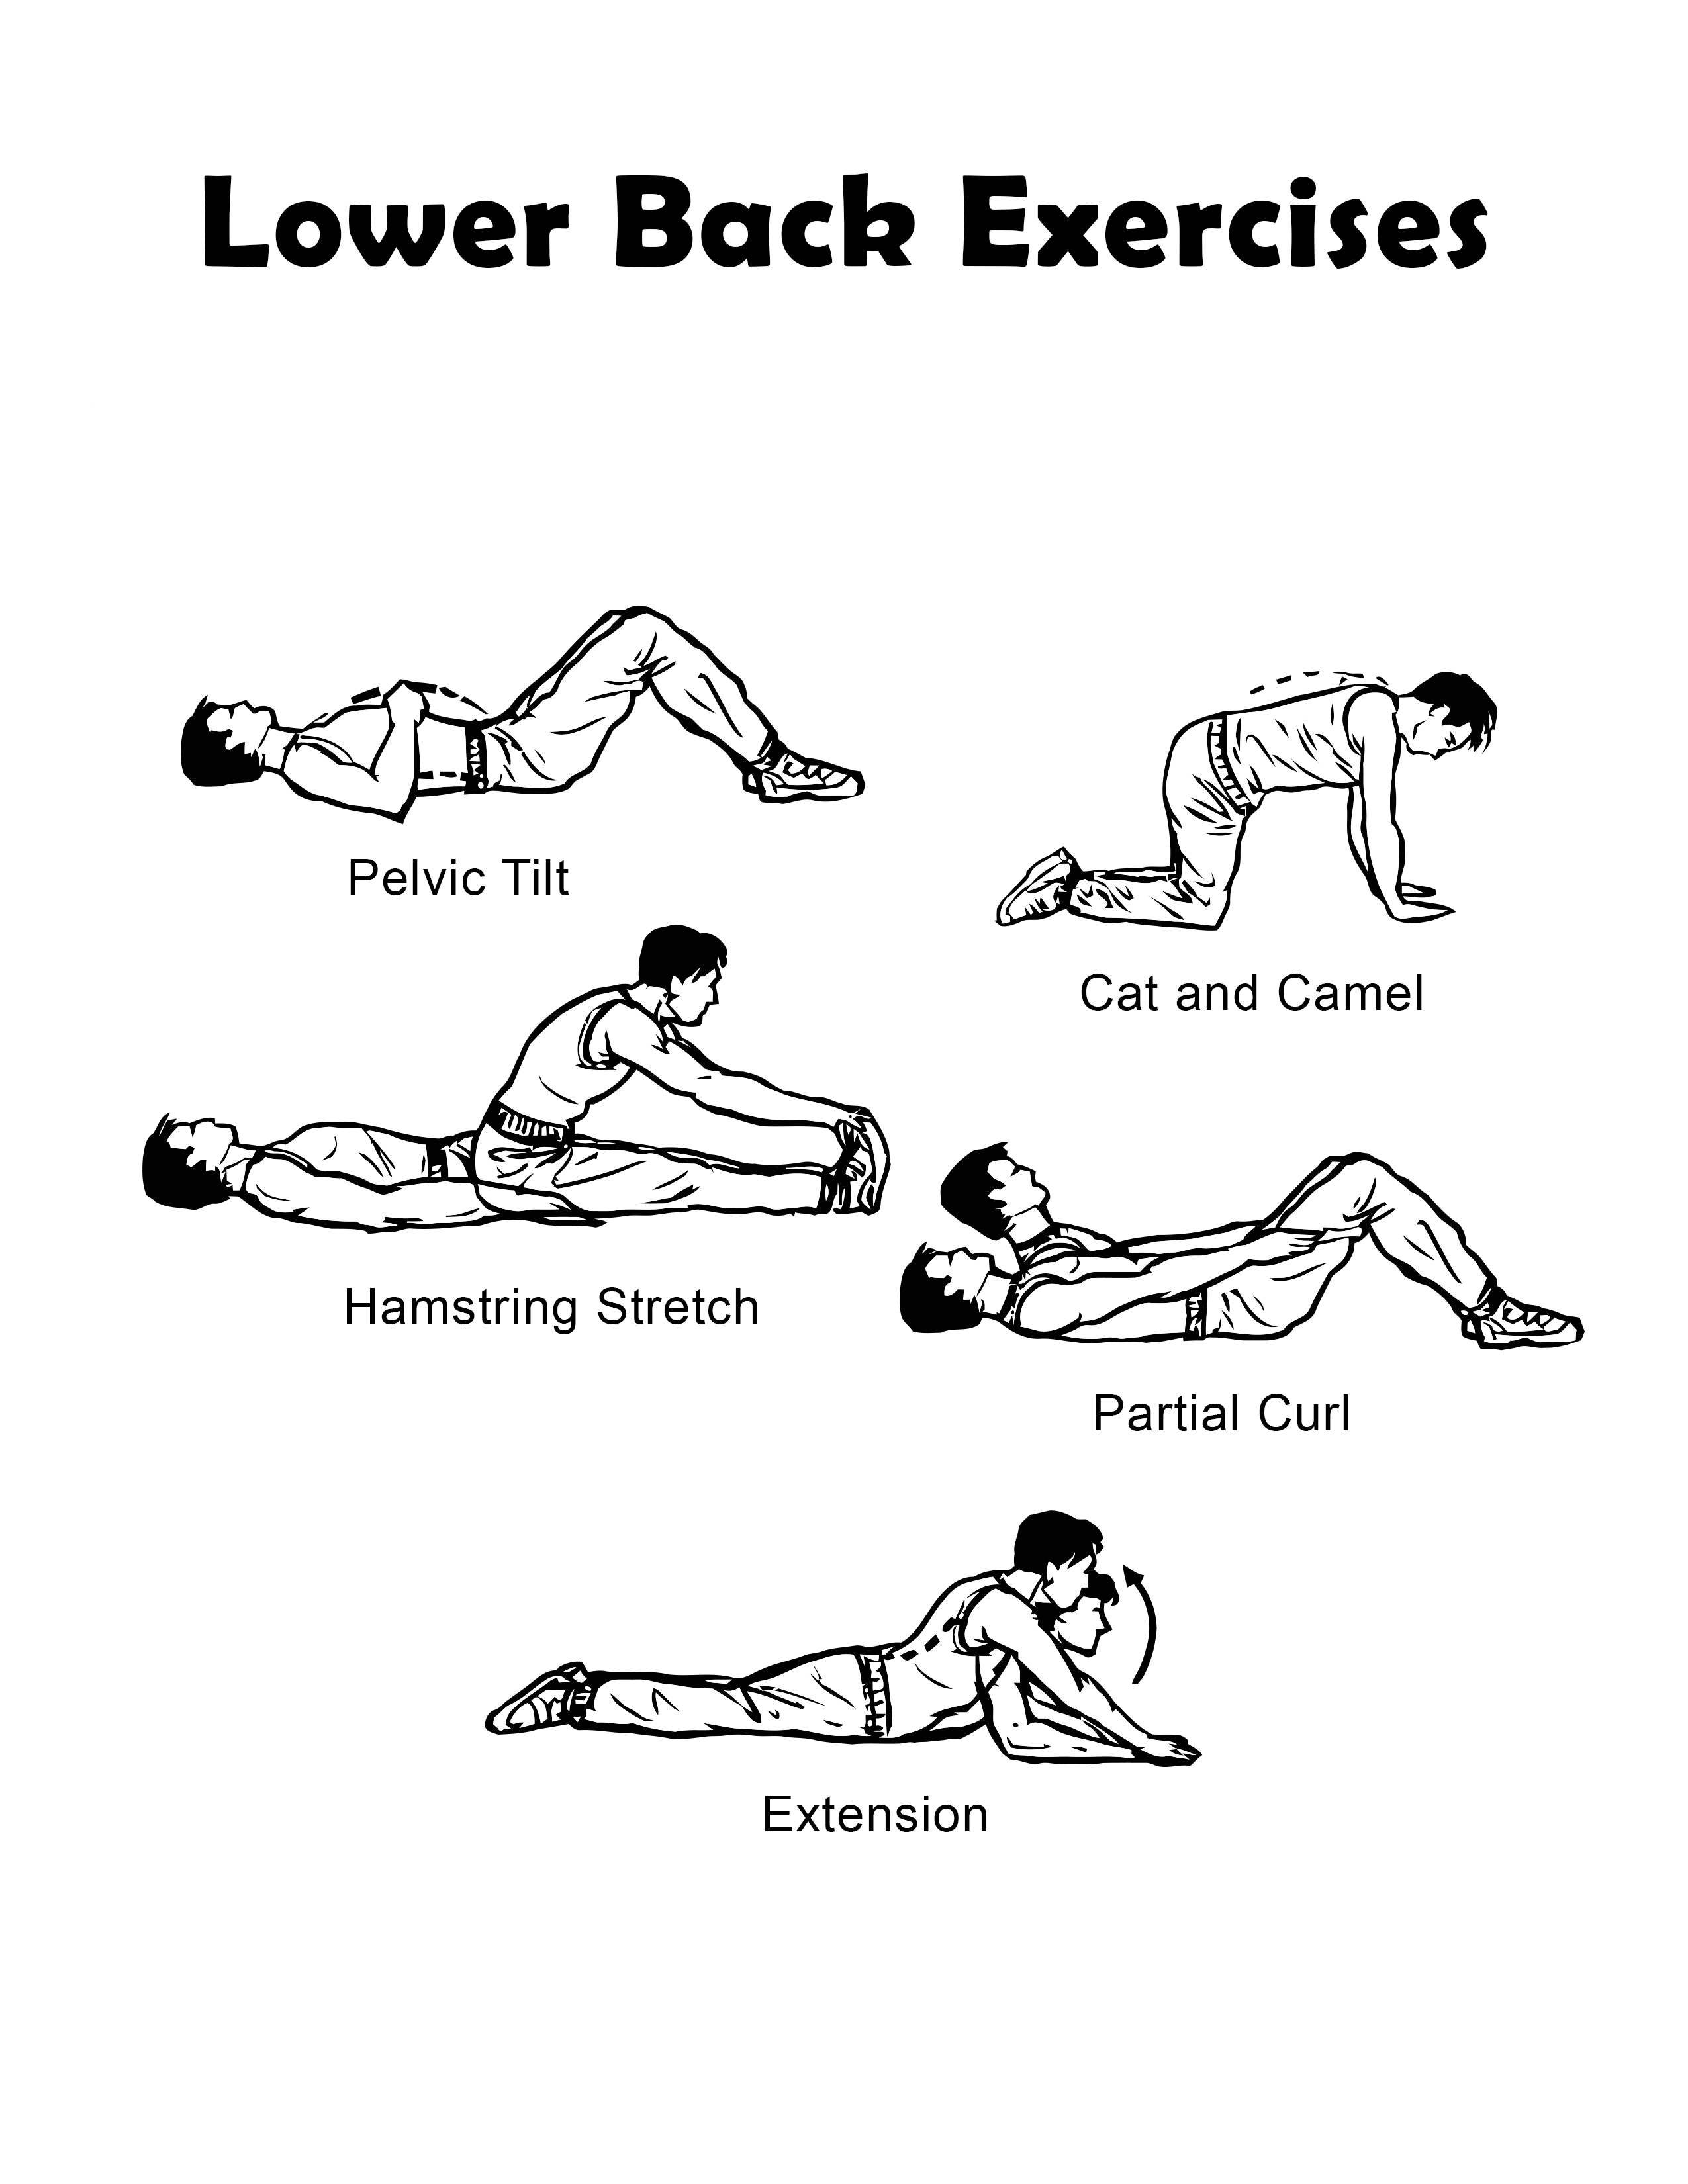 Lower Back Exercise Chart